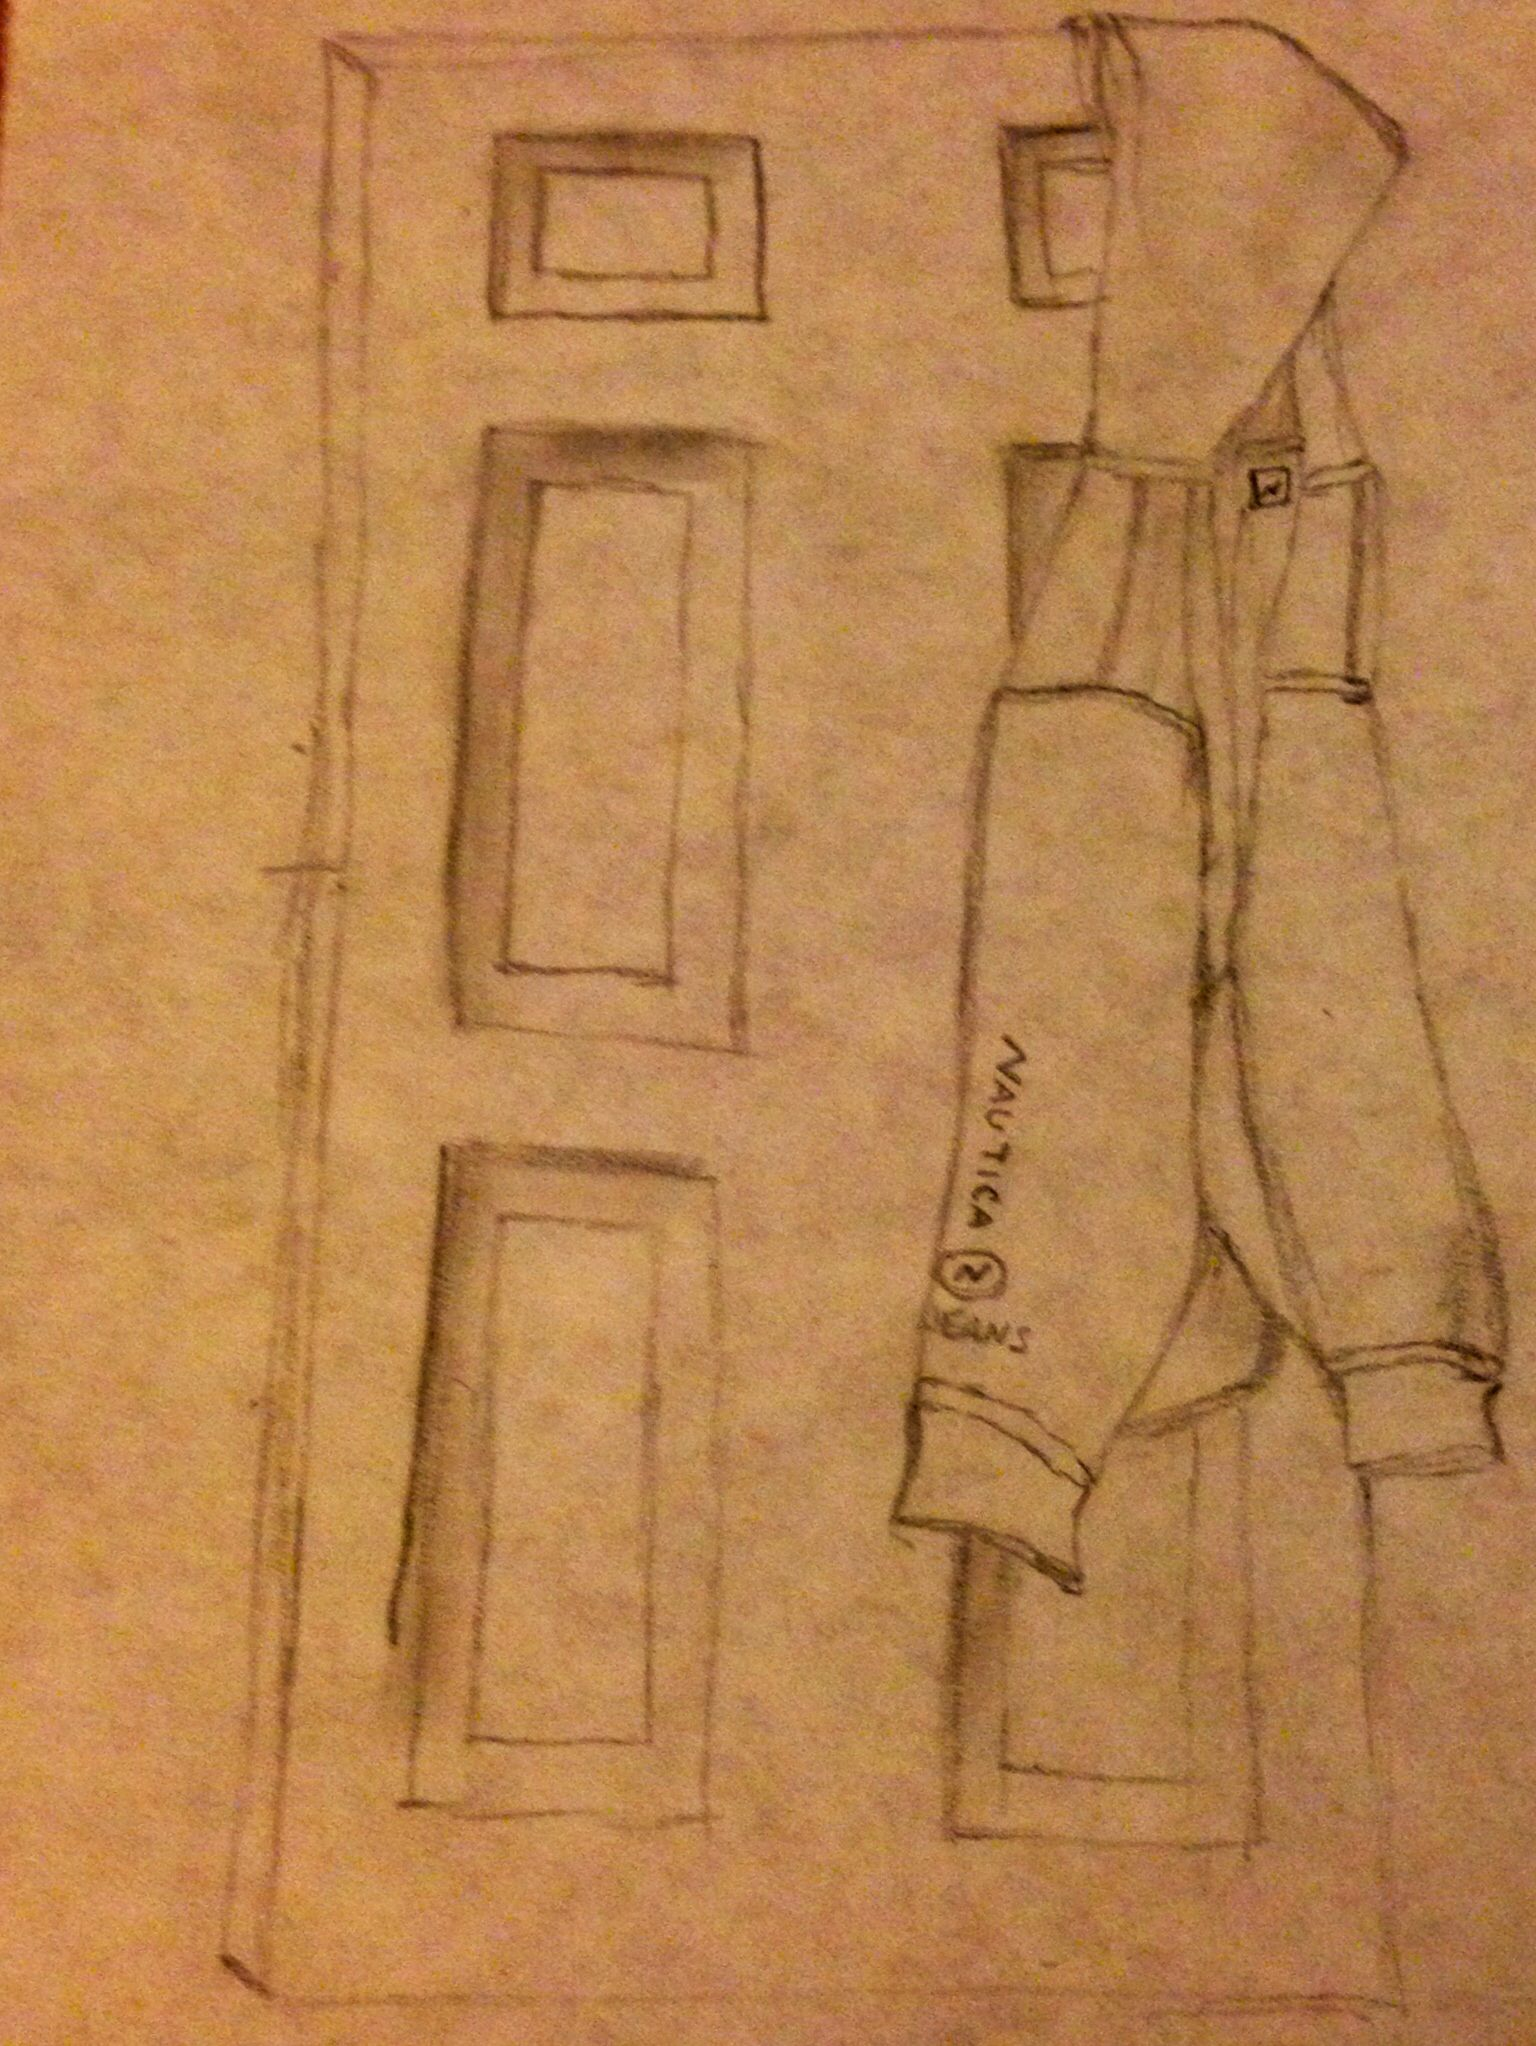 Door pencil drawing - Sweater On A Closet Door Drawing With Pencil